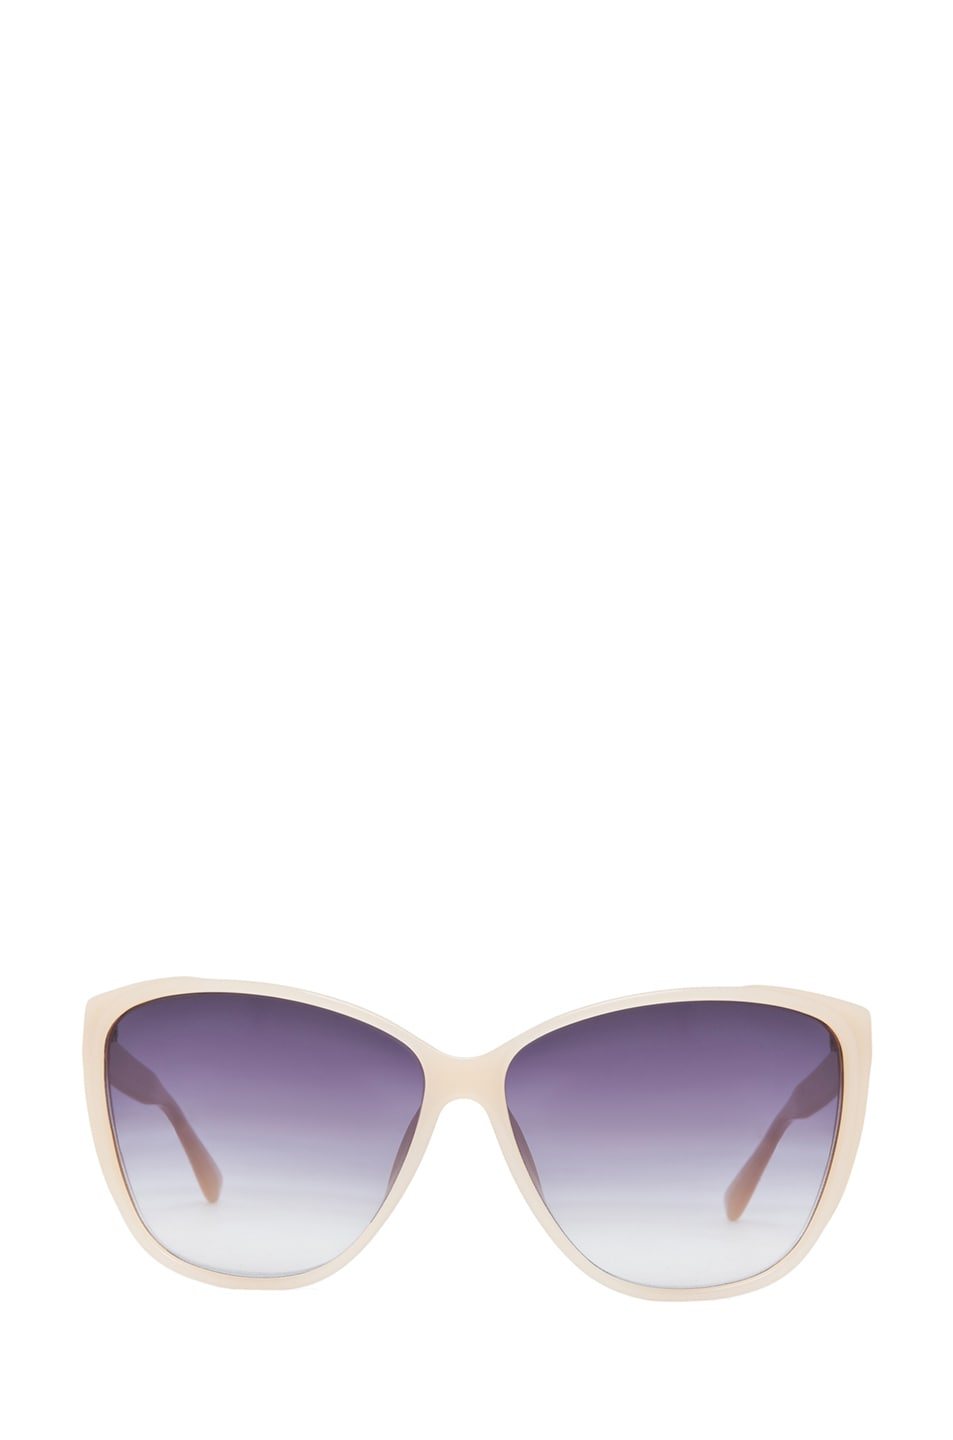 Image 1 of Matthew Williamson Cat Eye Sunglasses in Milky Peach